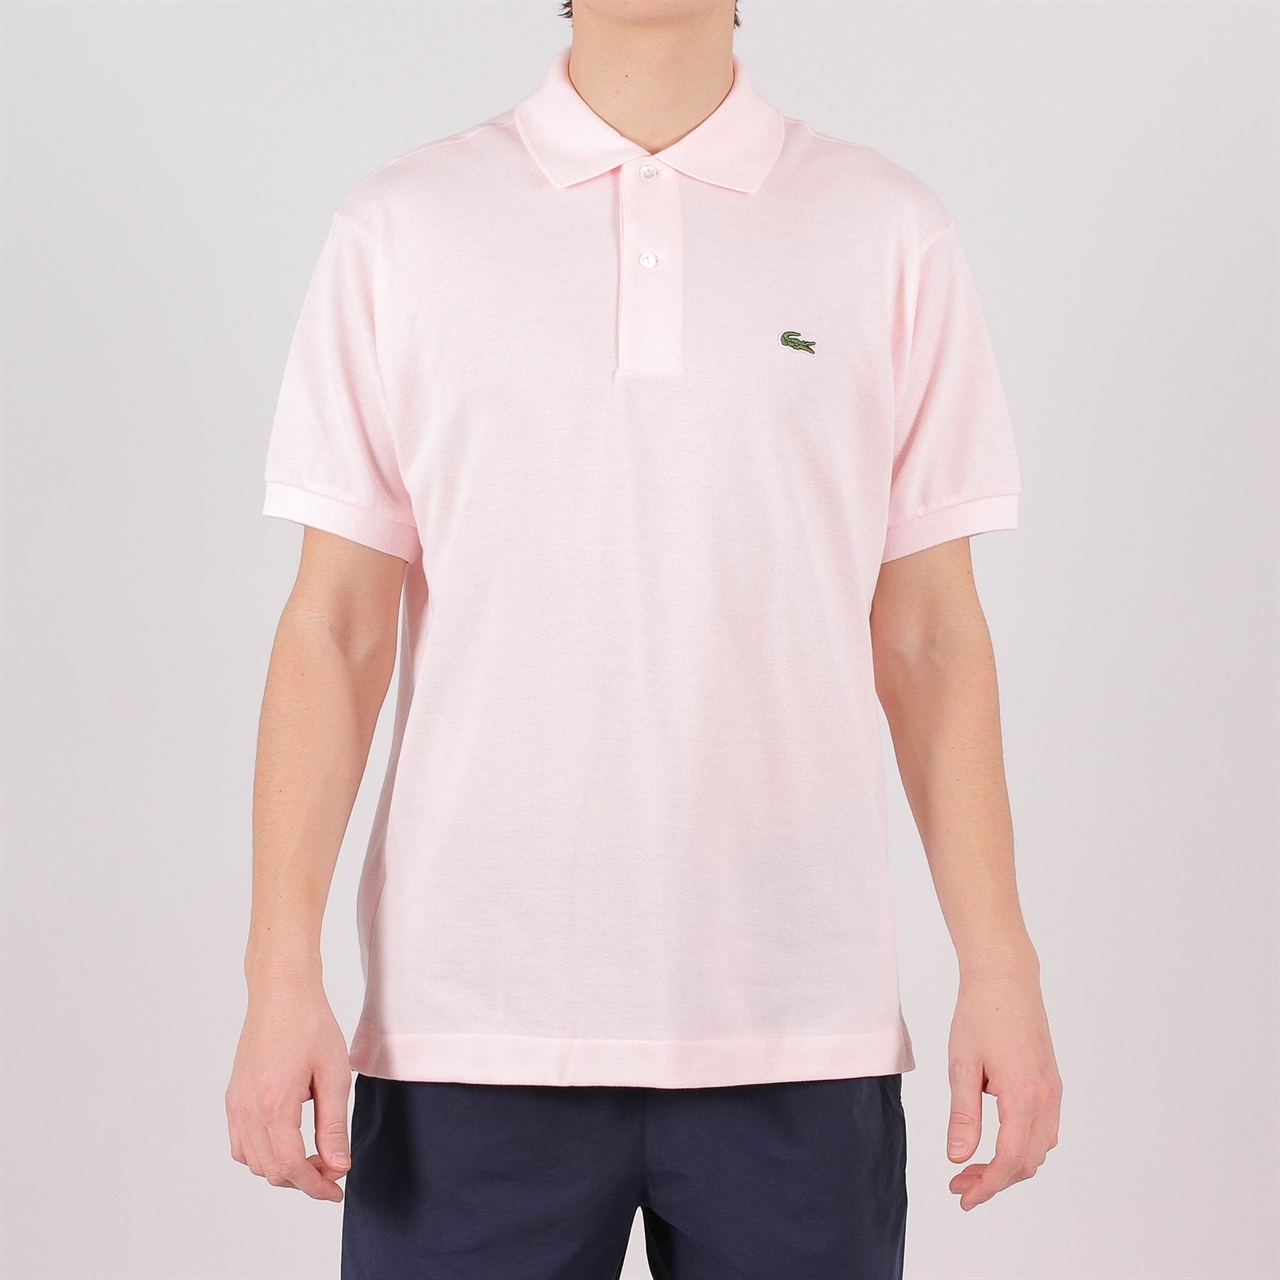 Polo Grey Lacoste Polo Lacoste Grey Light Grey Light Polo Lacoste Lacoste Polo Light HD9I2EYW